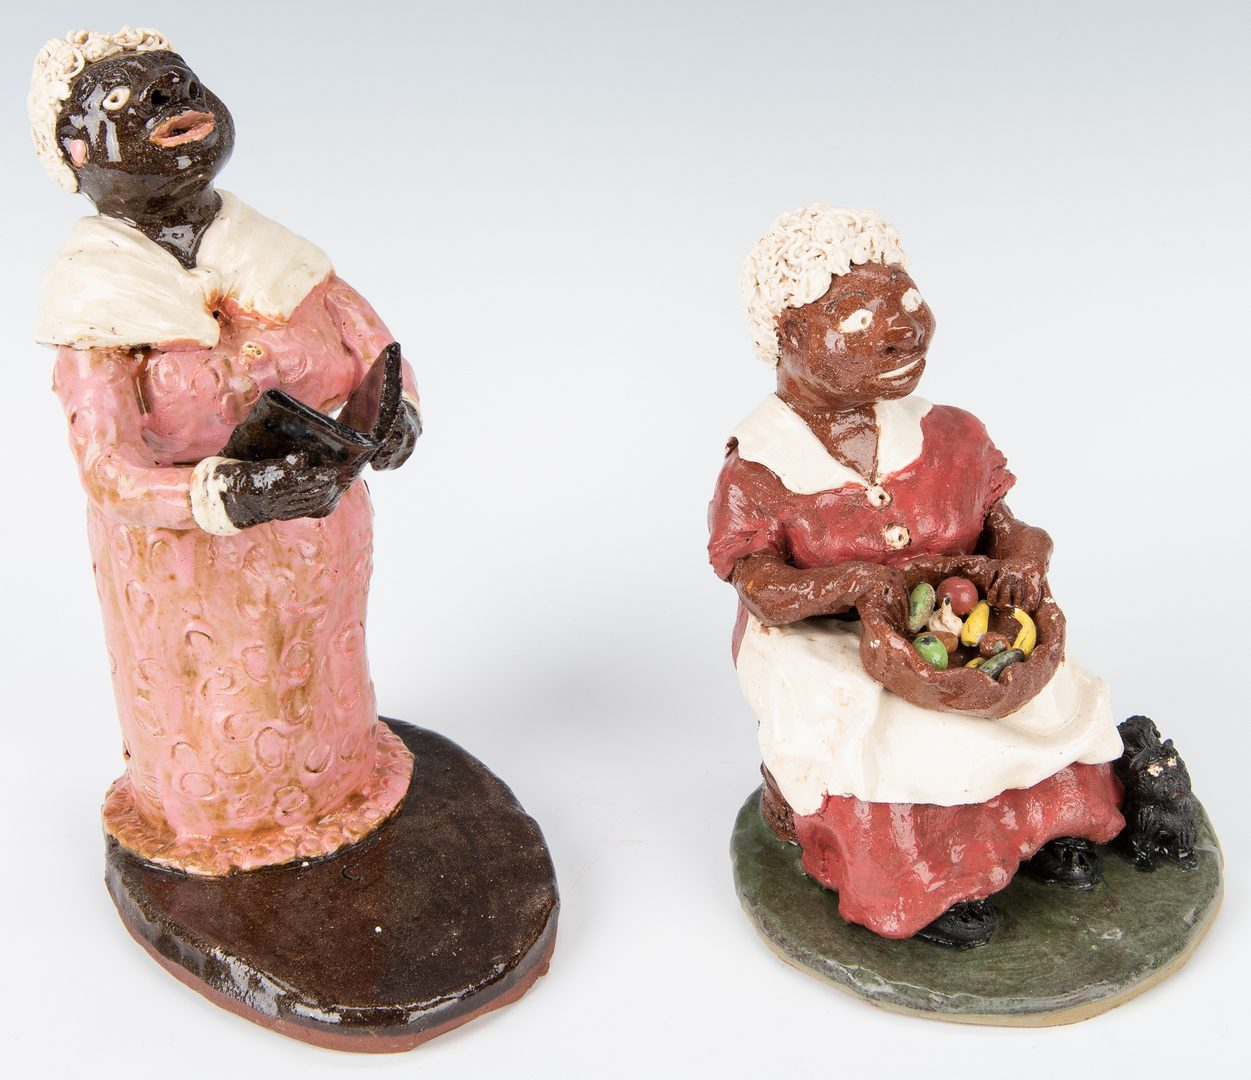 Lot 313: 4 Ceramic Folk Art Items, inc. figures